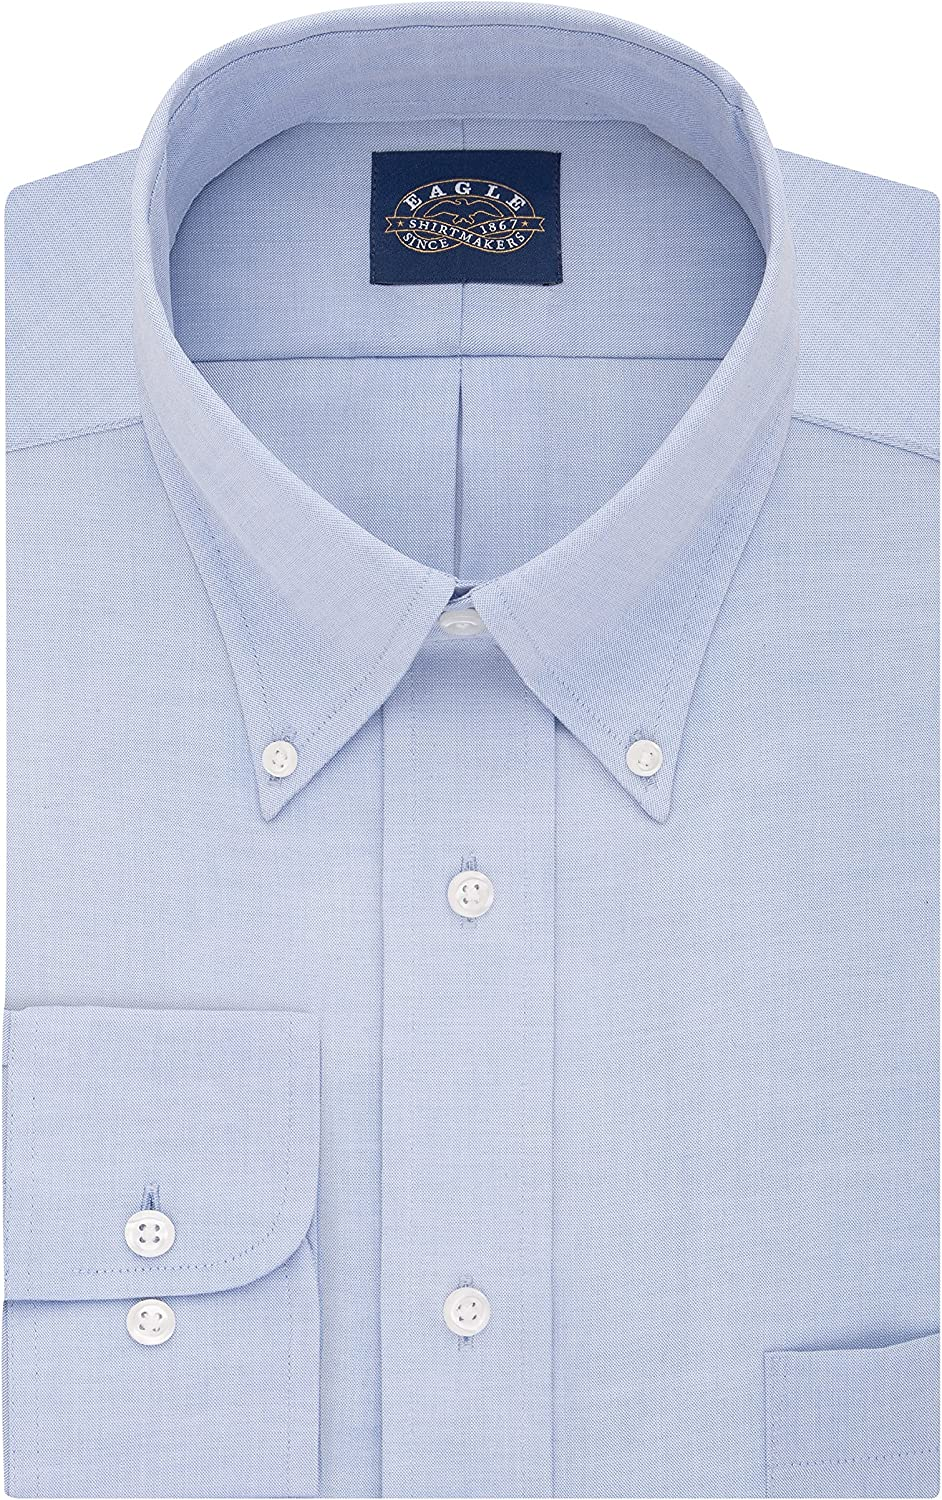 Eagle BIG FIT Dress Shirts Non Iron Stretch Button Down Collar Solid (Big and Tall): Clothing